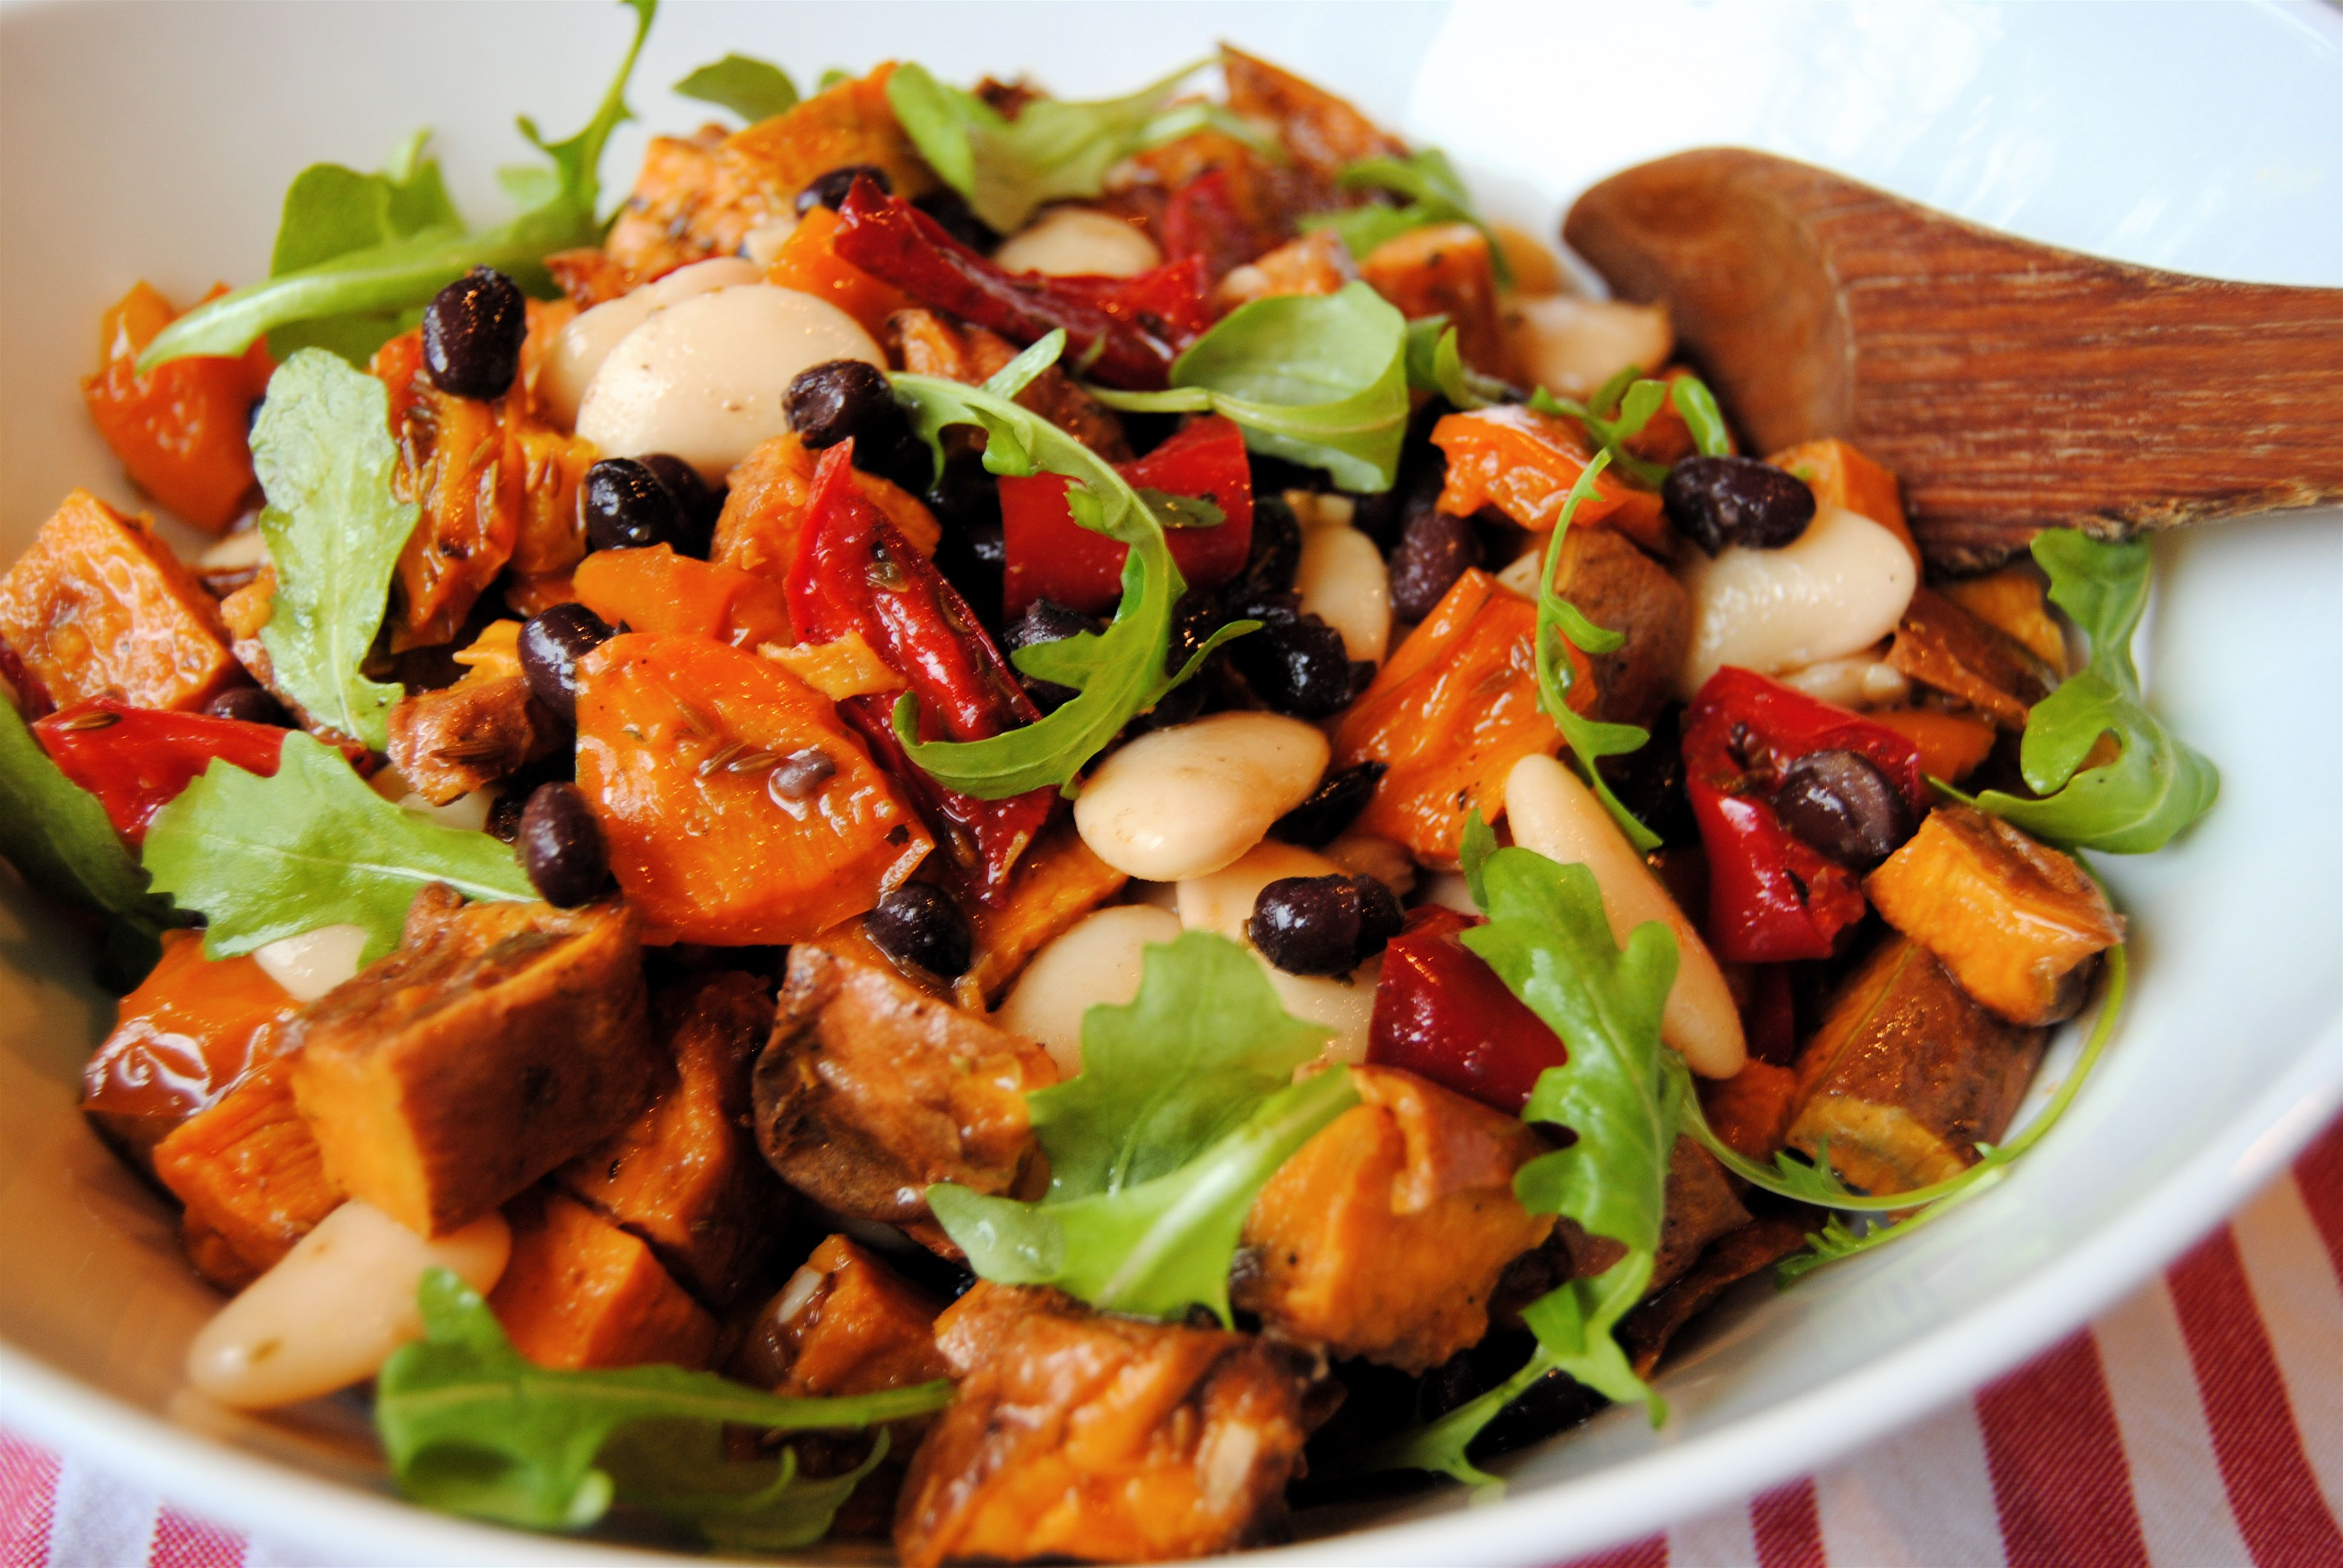 Roasted black bean salad recipes pinterest bean salad beans recipes forumfinder Image collections